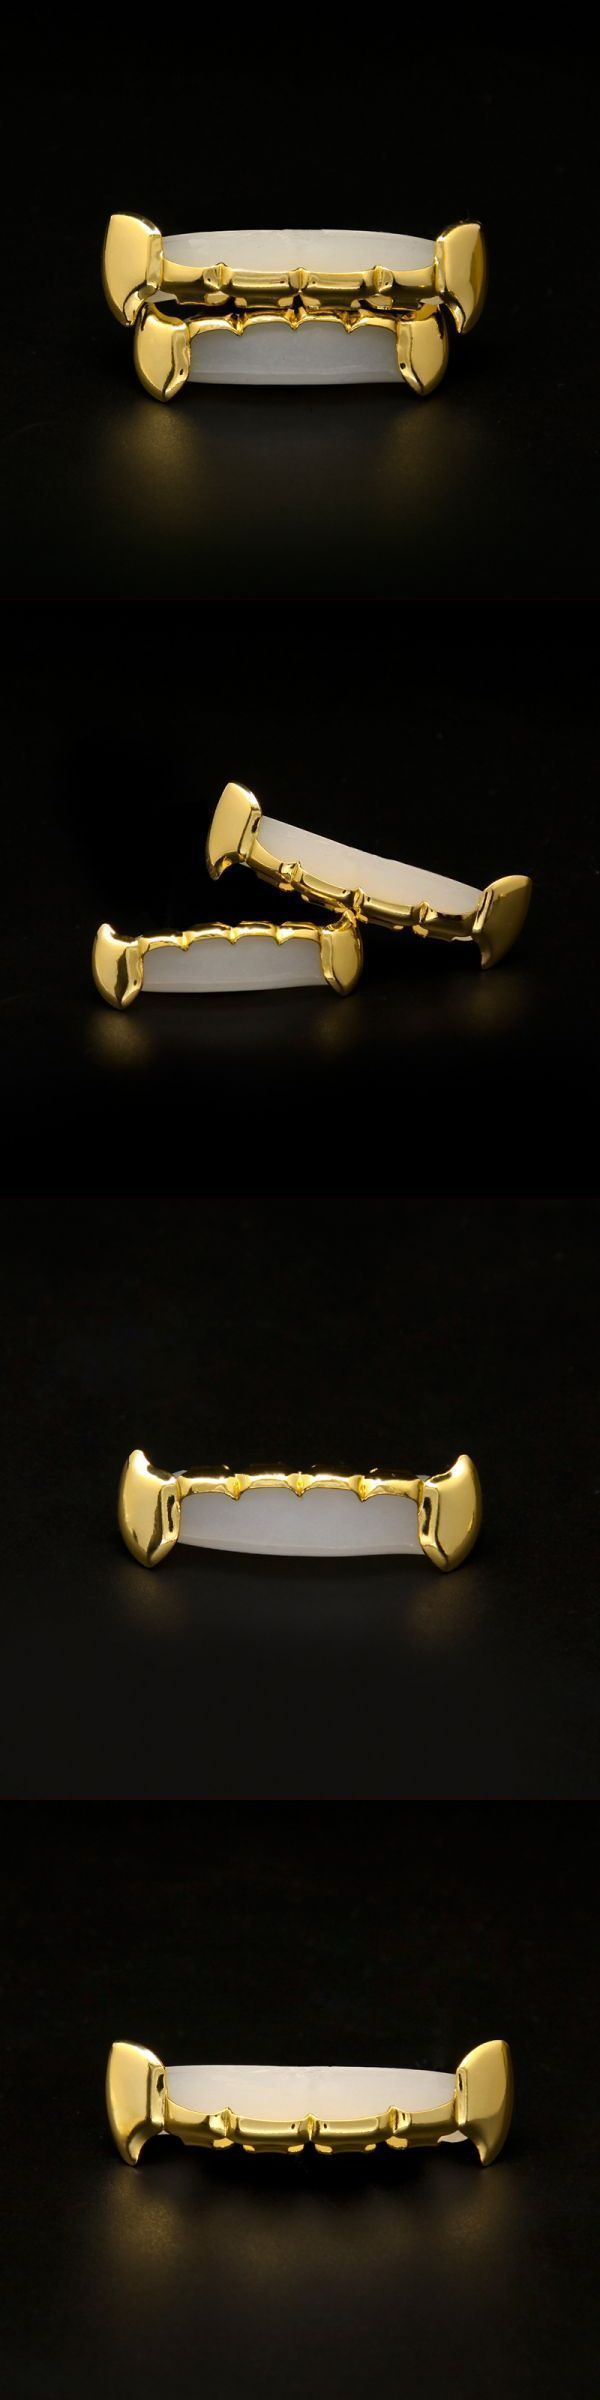 Gold plated teeth hip-hop top amp; bottom mouth grillz caps  body jewelry chicago #body #jewelry #20 #gauge #body #jewelry #lot #body #jewelry #nearby #jsw #body #jewelry